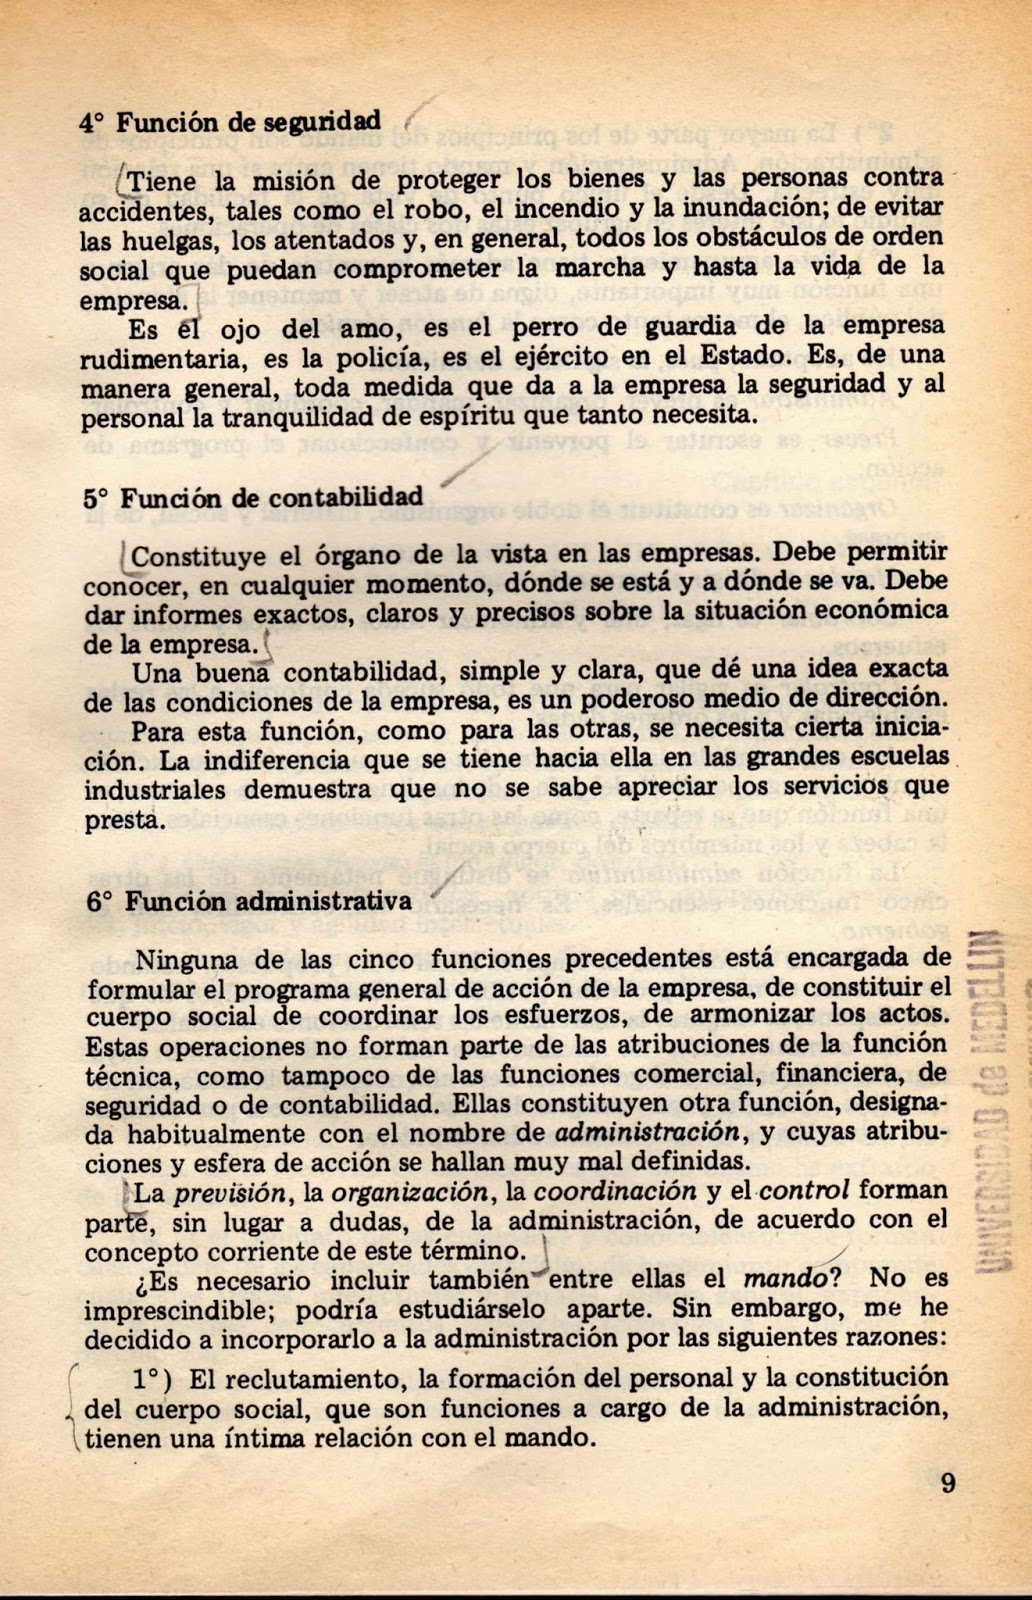 2 fayol industrial and general mang 1 biography 2 work  221 functions of management 222 principles of  management  in words of fayol, the worker always on the same post, the  manager always concerned  in: fayol (1930) industrial and general  administration pp.